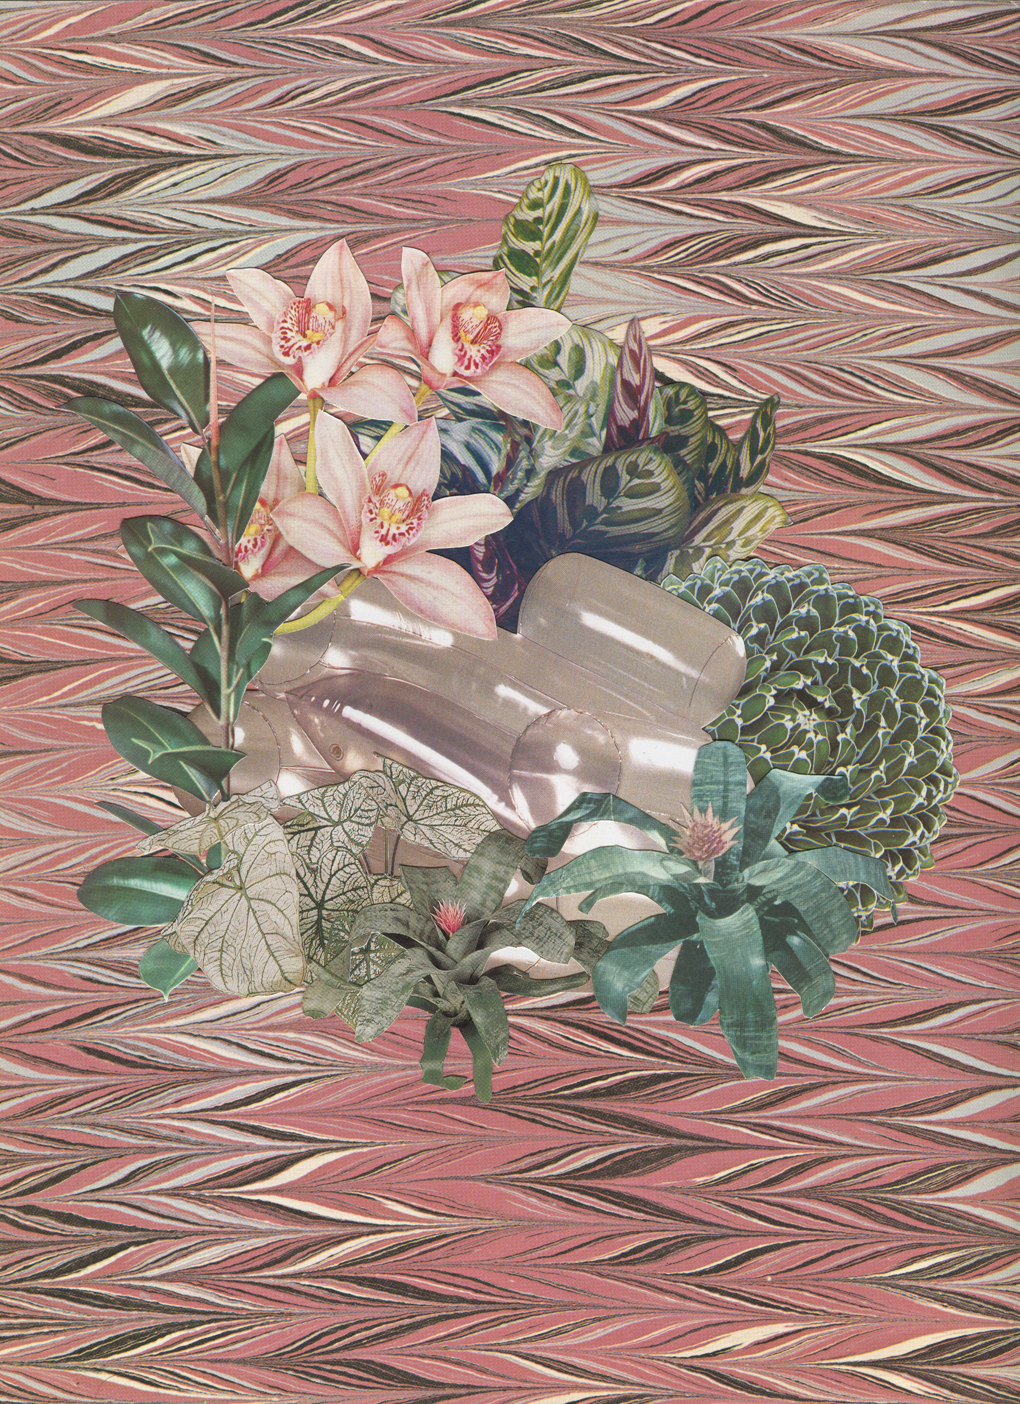 Plastic Plantasia #1, 2017, collage, found paper, 410 x 310mm